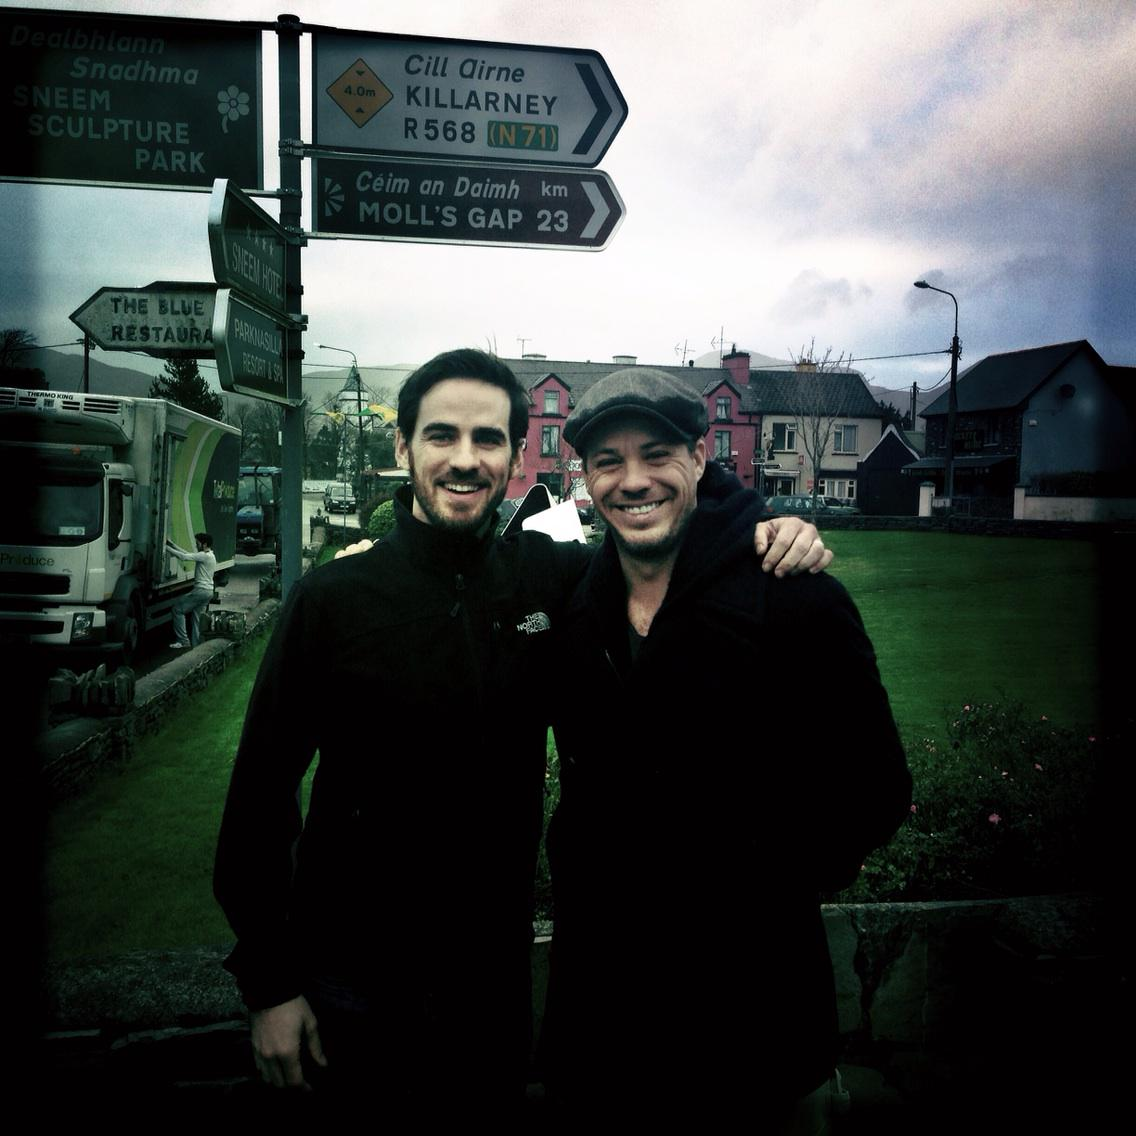 With @colinodonoghue1 in Ireland. Tight like Peaky Blinders http://t.co/v0rNUTTK20